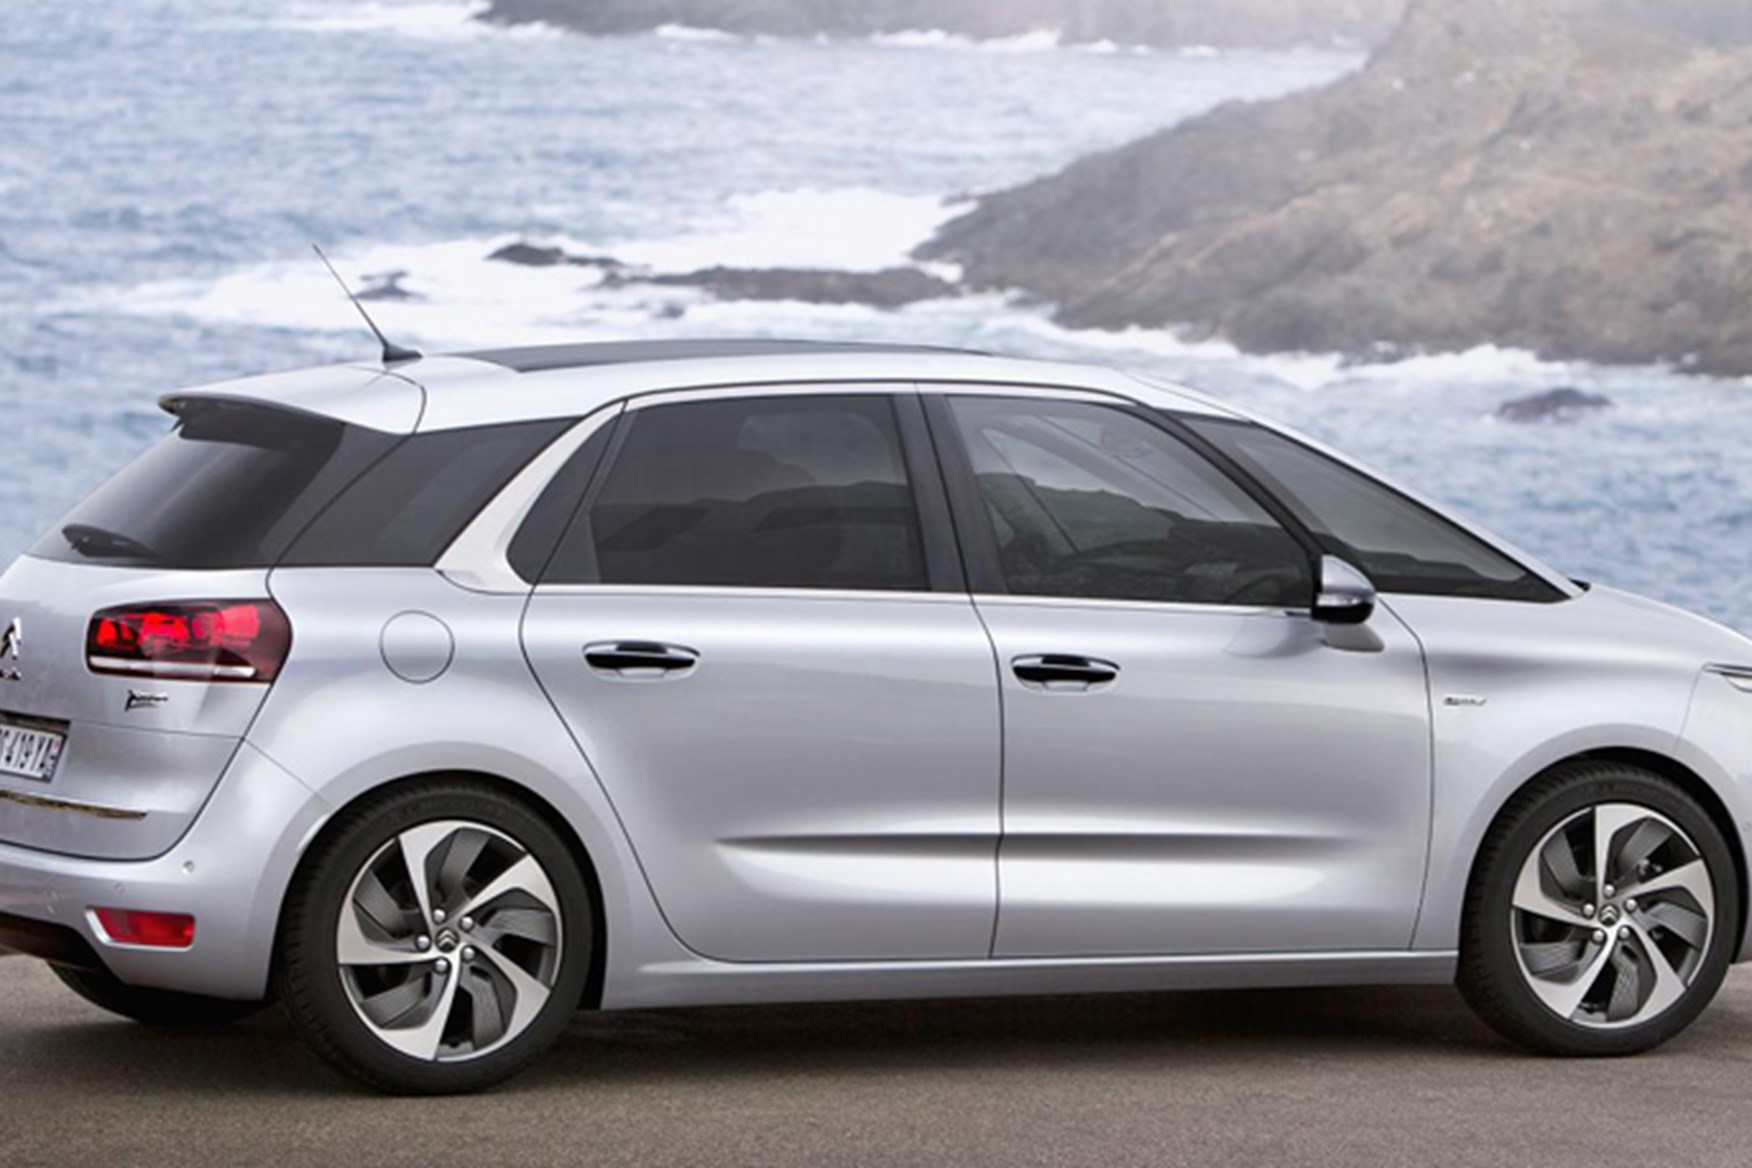 Citroen C4 Picasso Review | Auto Express